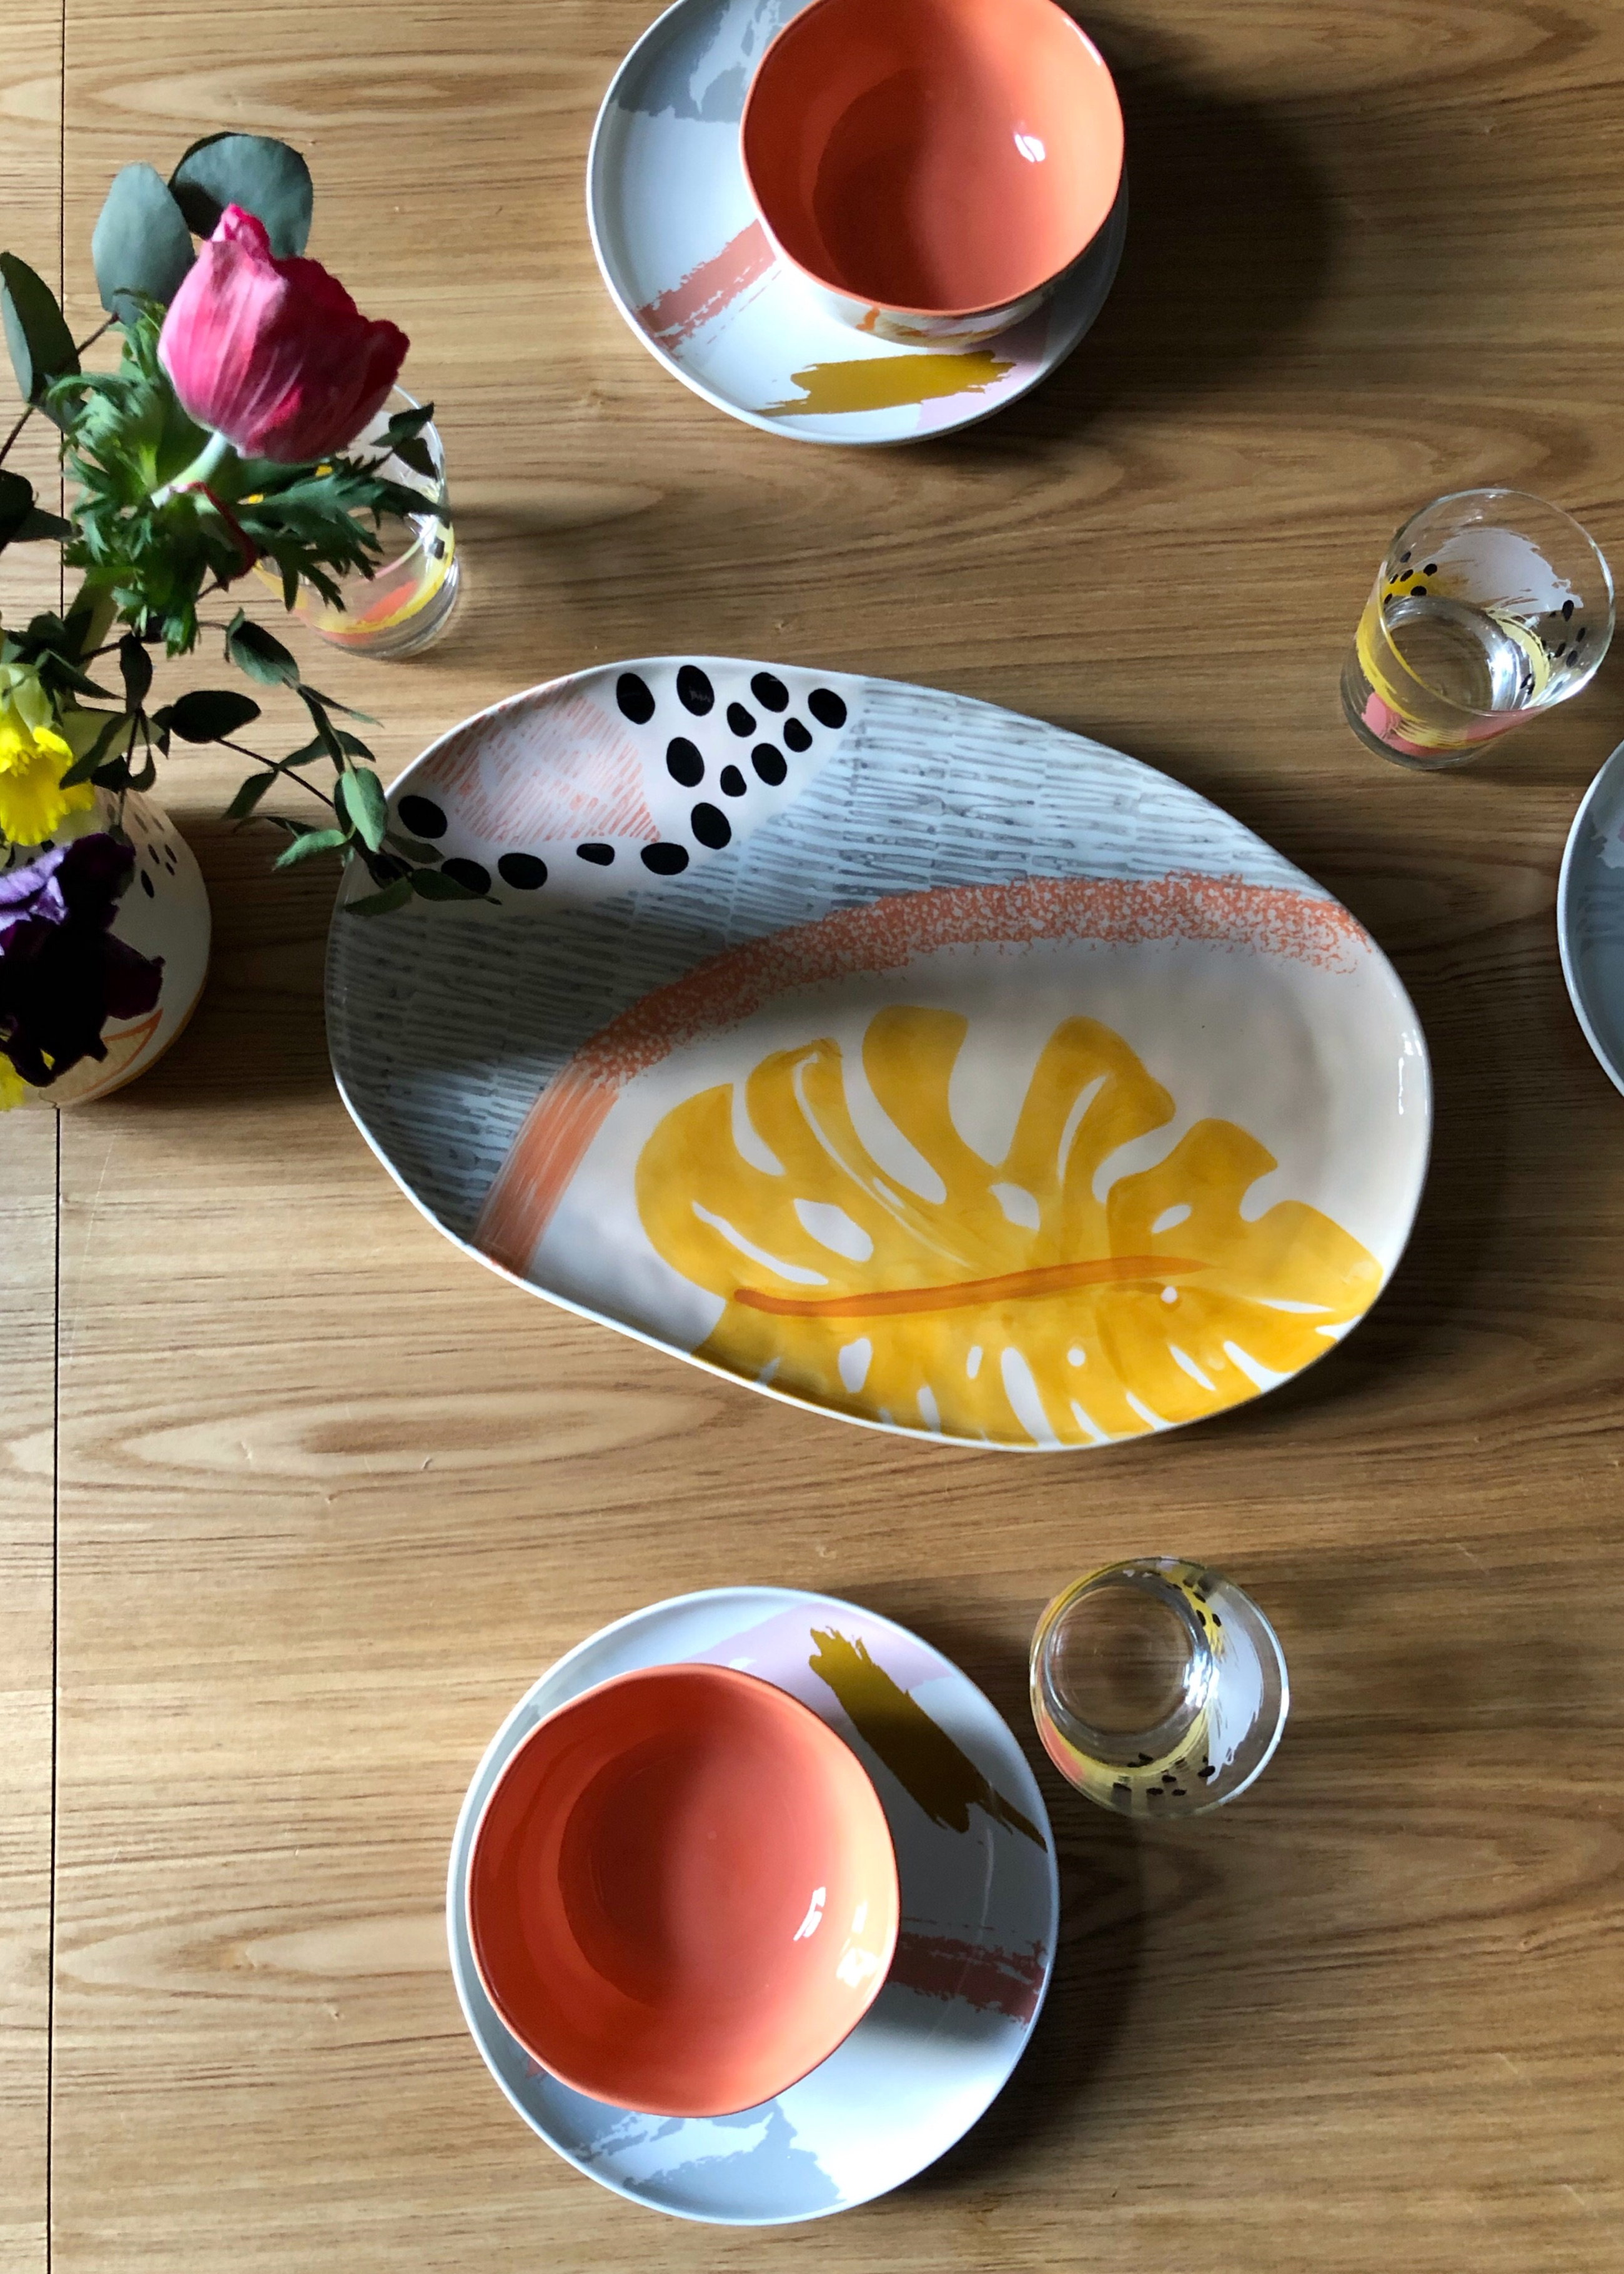 Marks Spencer Botanical Spring Dining Ideas With Hand Painted Mark Making Ceramics Made In Portugal Interiors Ideas And Inspiration 17 Design Soda Interiors Blog Colour Pattern Patina